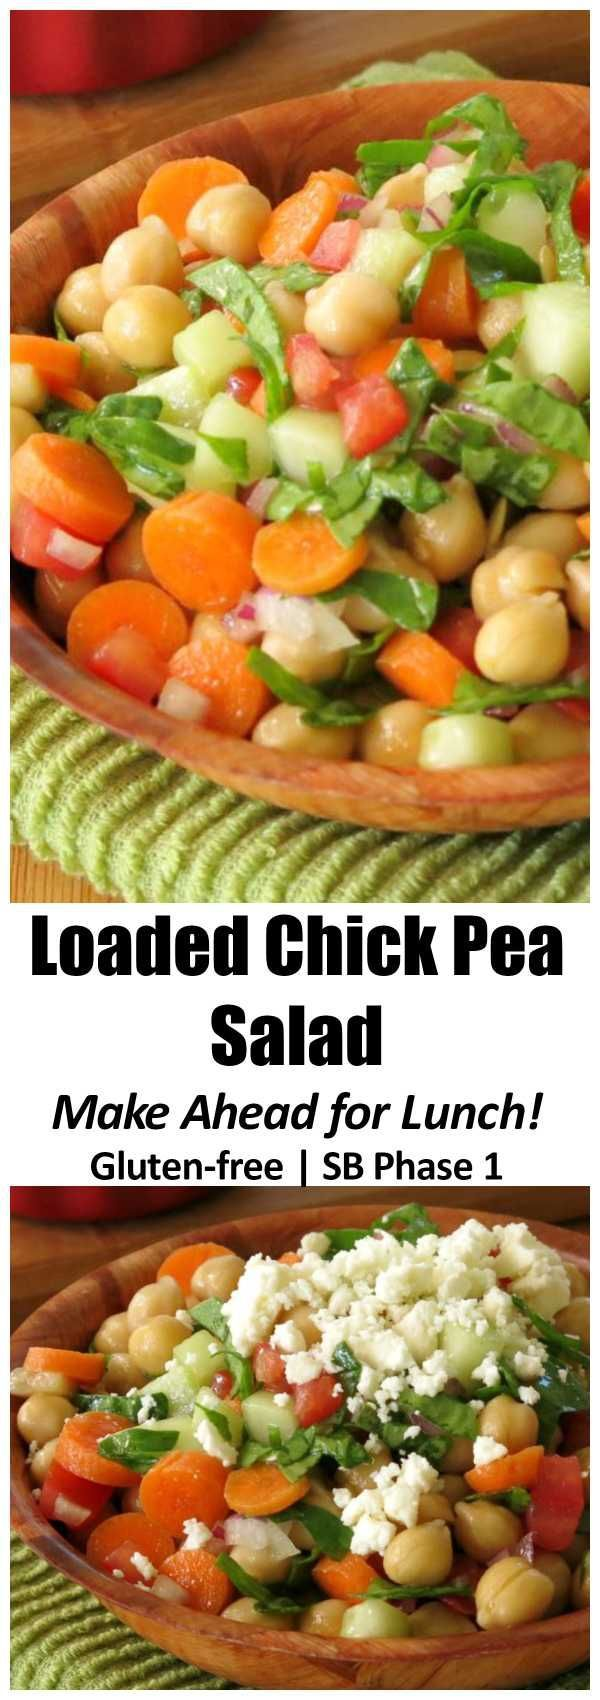 Healthy Chick Pea Salad with feta cheese is loaded with vetetables and is perfect packed in mason jars for lunches all week. Make ahead because it tastes even better after it marinates! Gluten-free, South Beach Phase 1, vegetarian and vegan option.